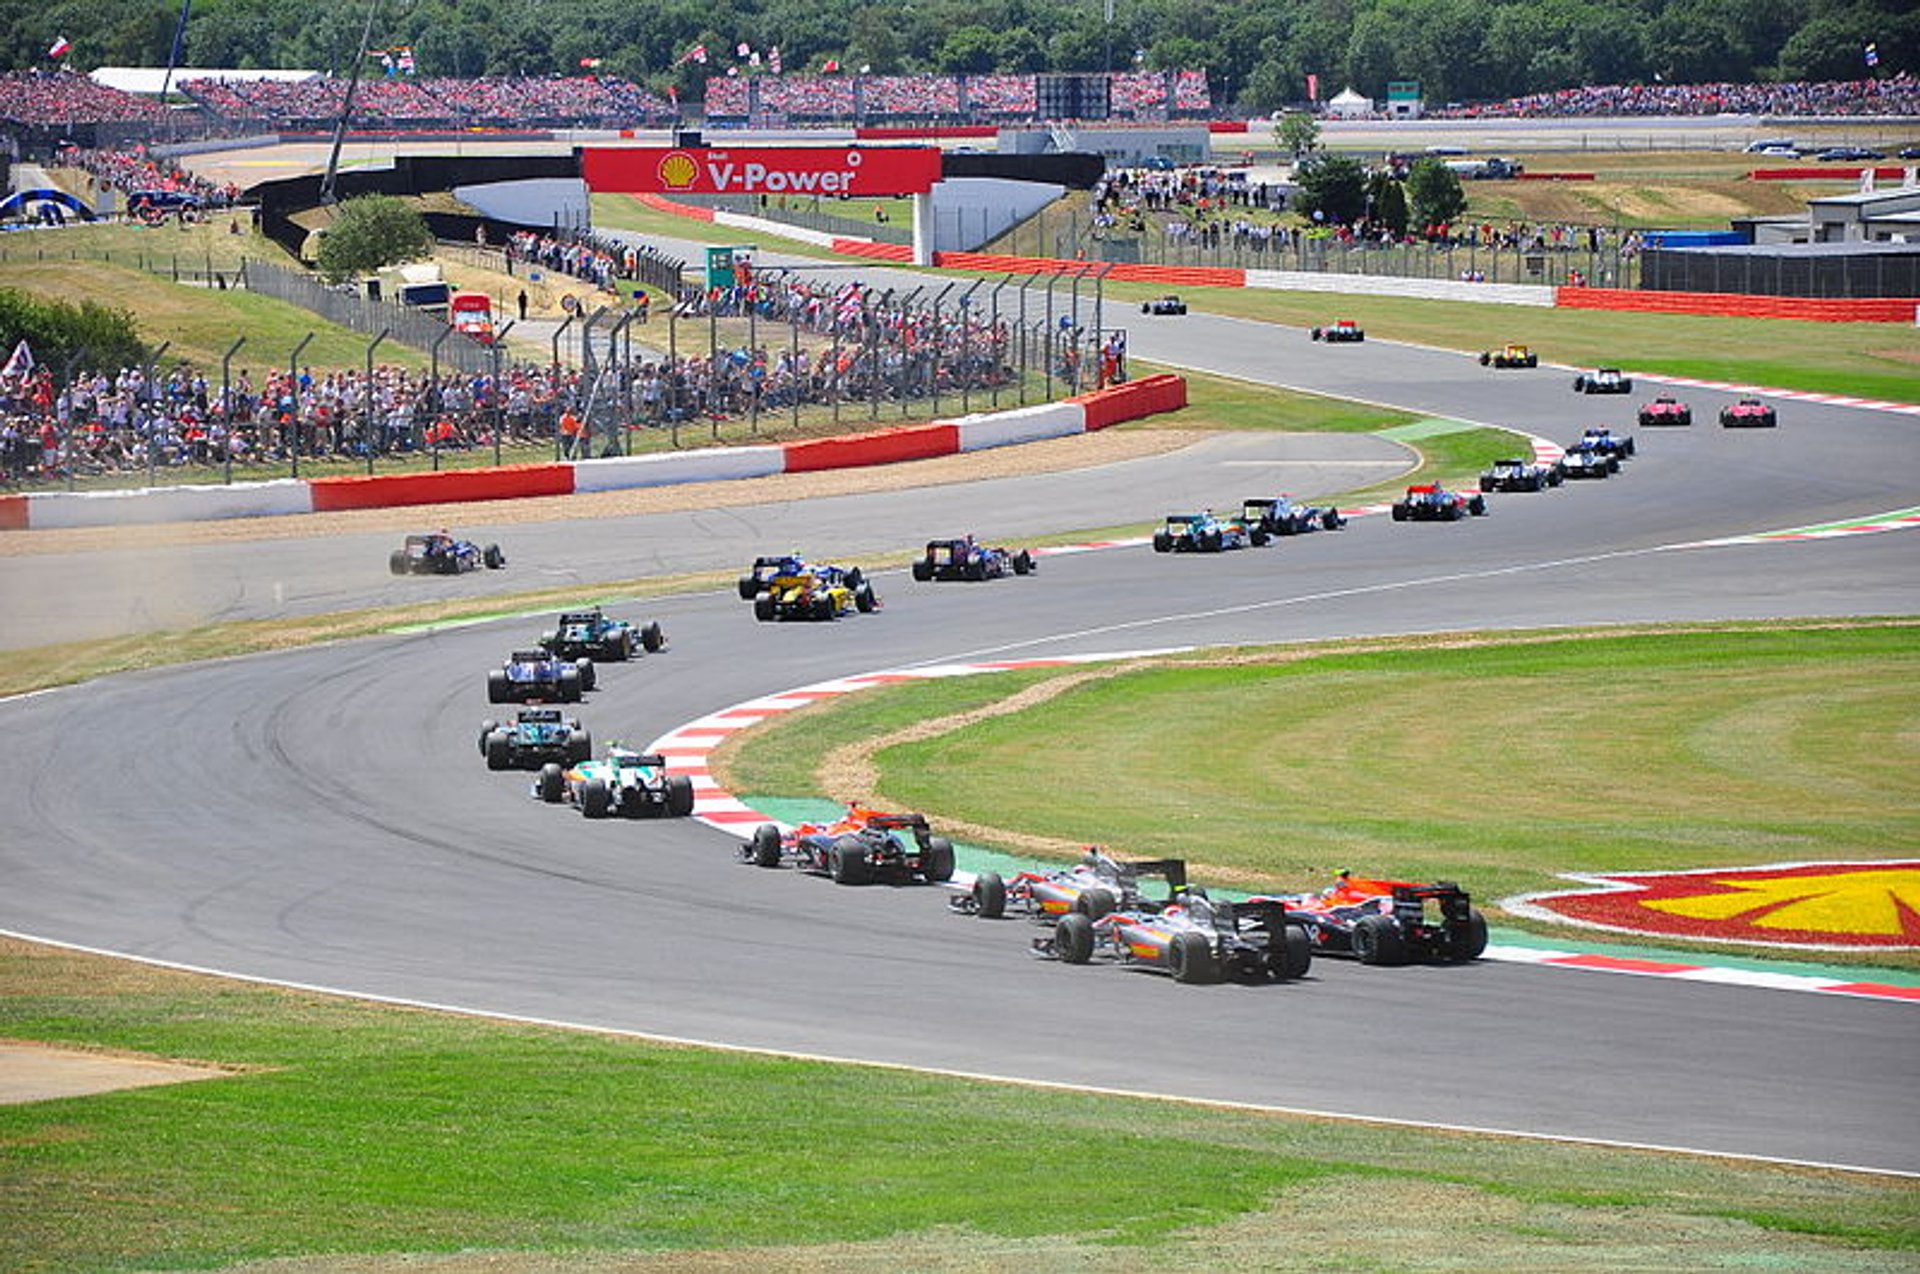 British Grand Prix in England - Best Season 2020